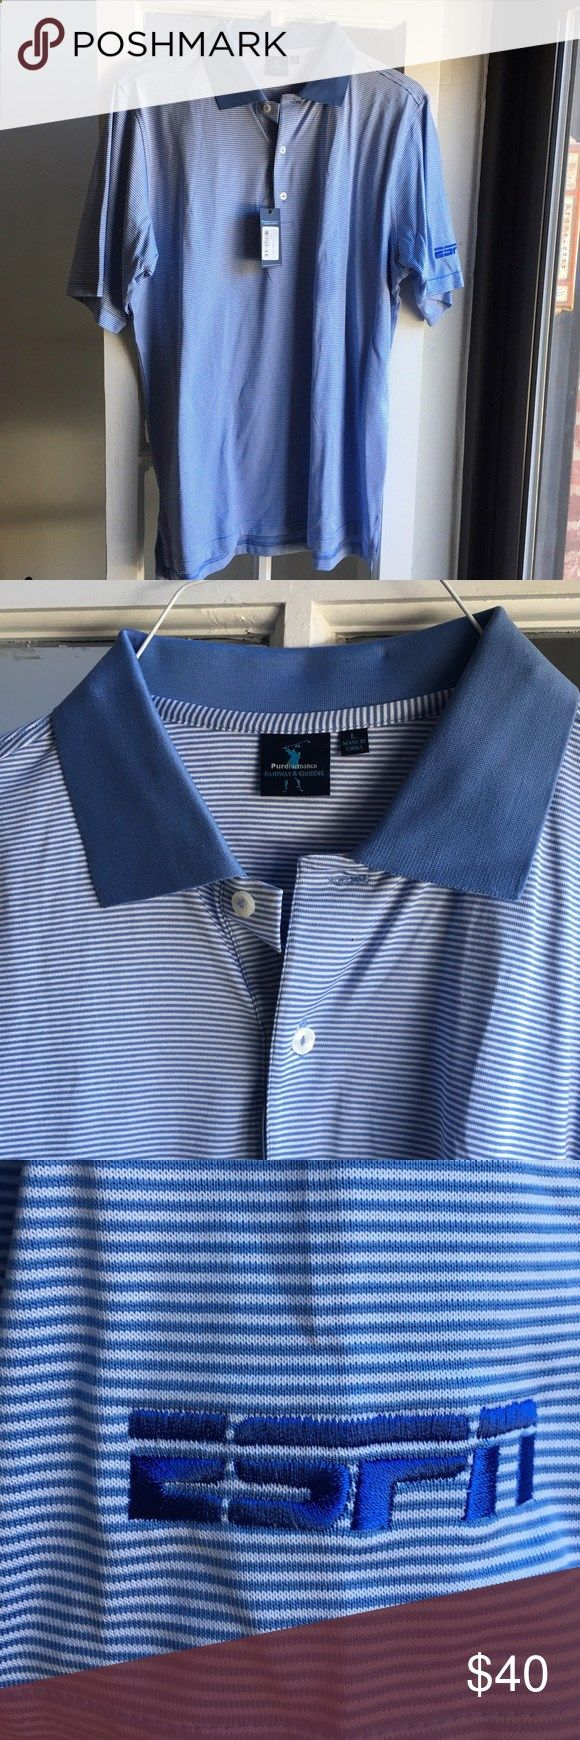 Golf Shirts - Blue and white collared golf shirt Blue and white striped golf shirt with blue collar and ESPN branding on the sleeve. Shirts Polos